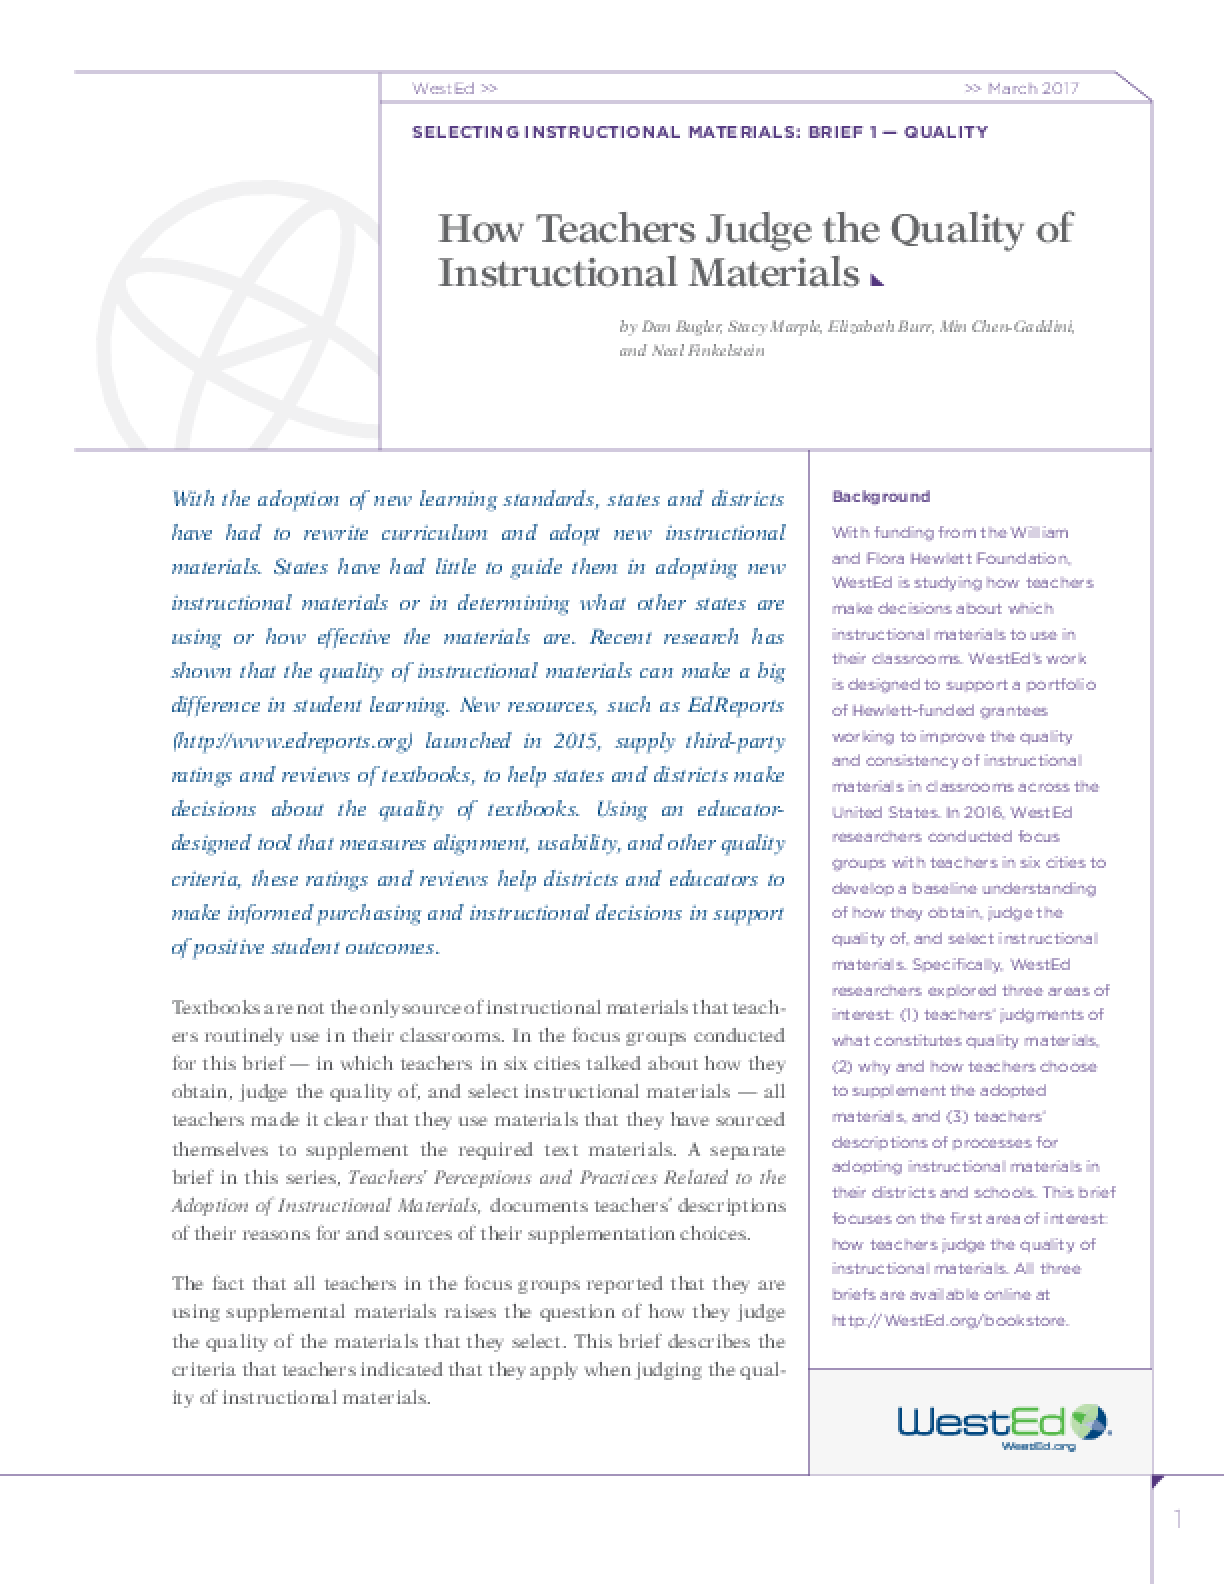 How Teachers Judge the Quality of Instructional Materials: Selecting Instructional Materials, Brief 1 - Quality